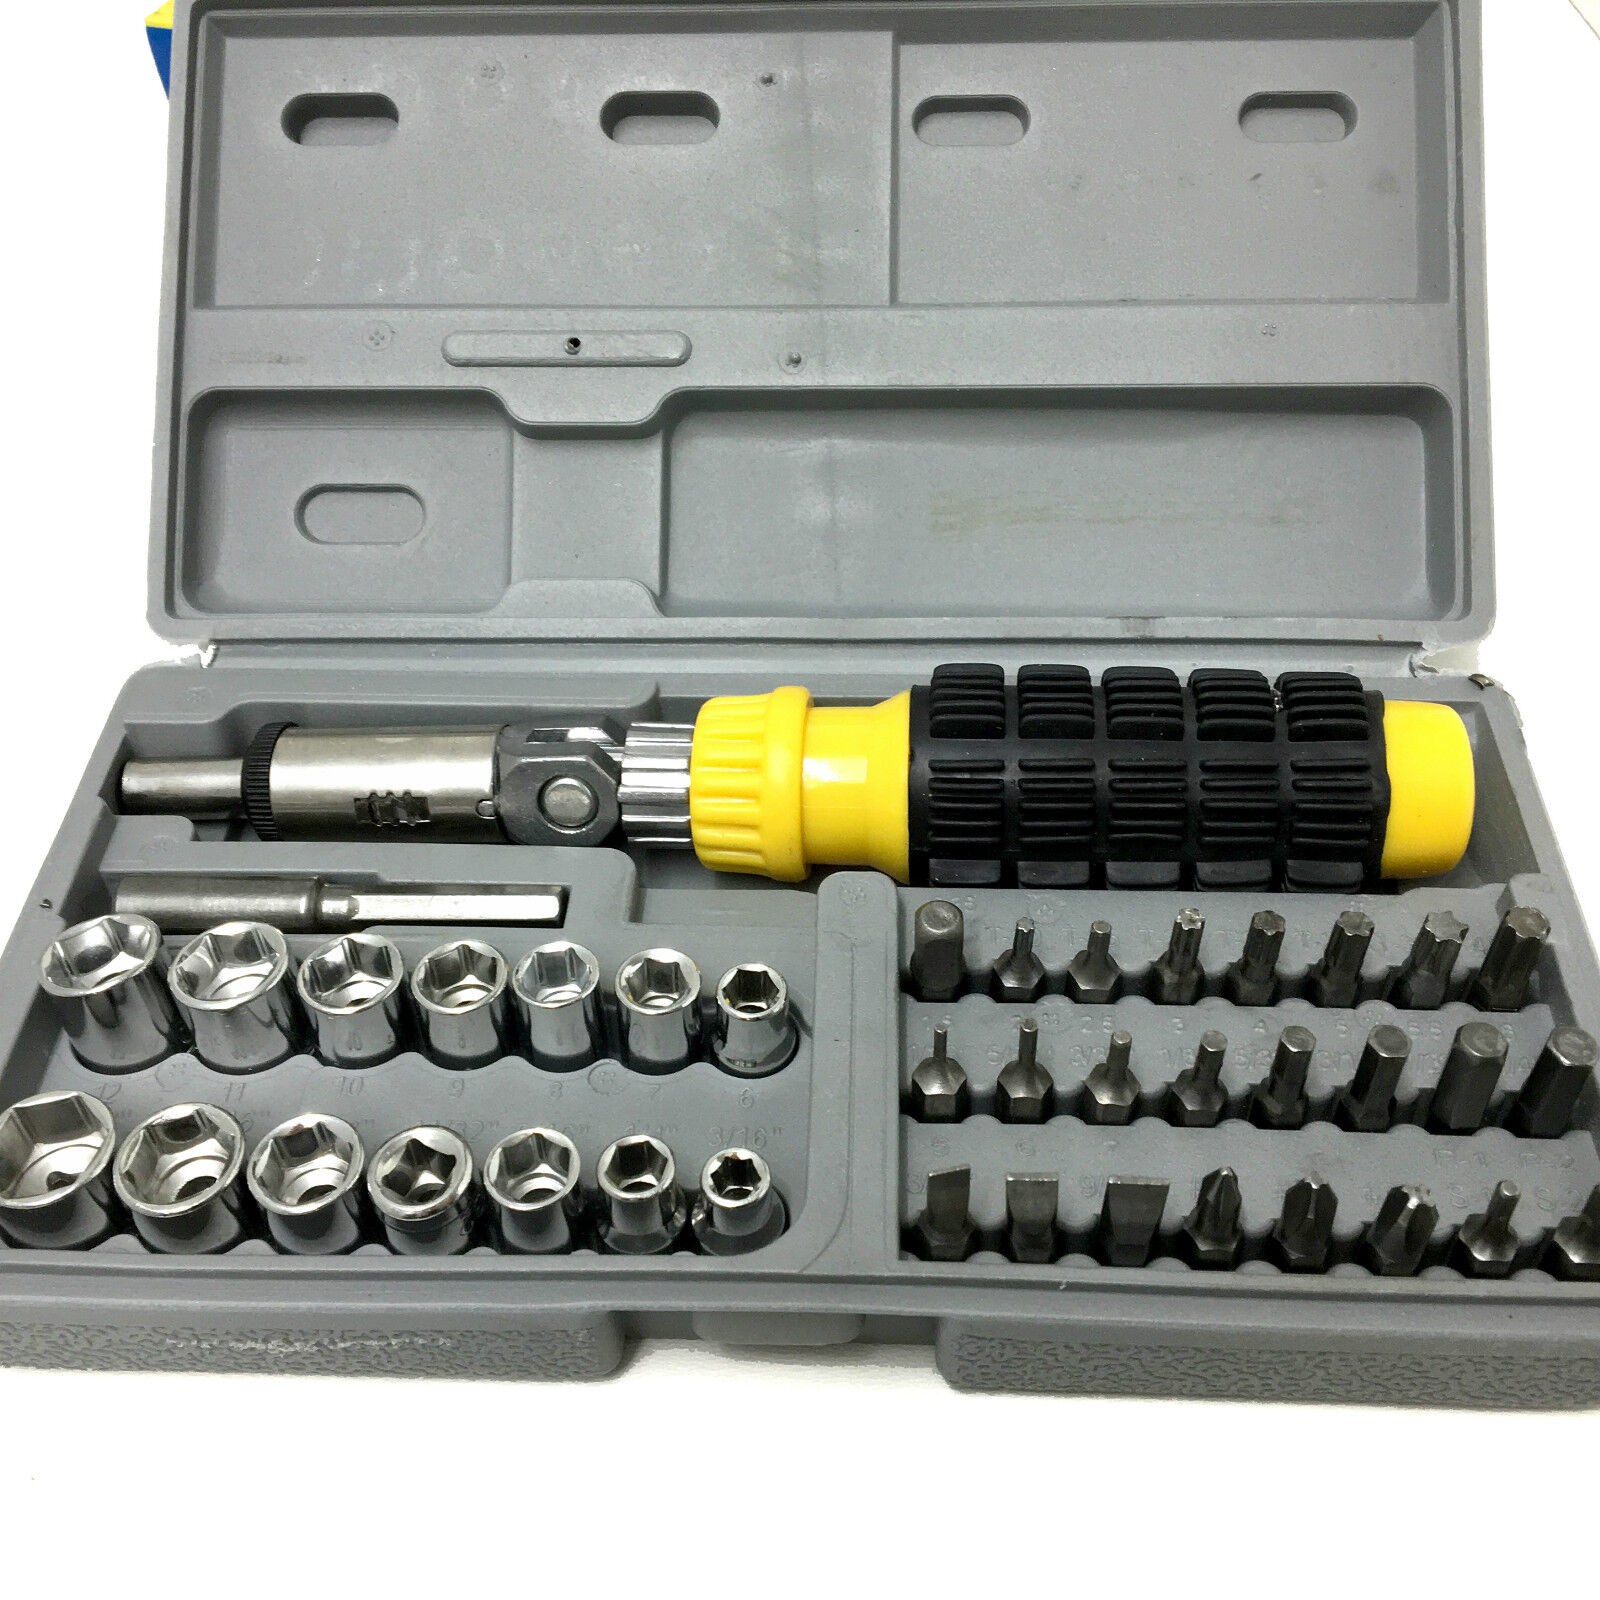 41 Pc Socket And Bit Set 3 Way Ratchet Screwdriver Adapter